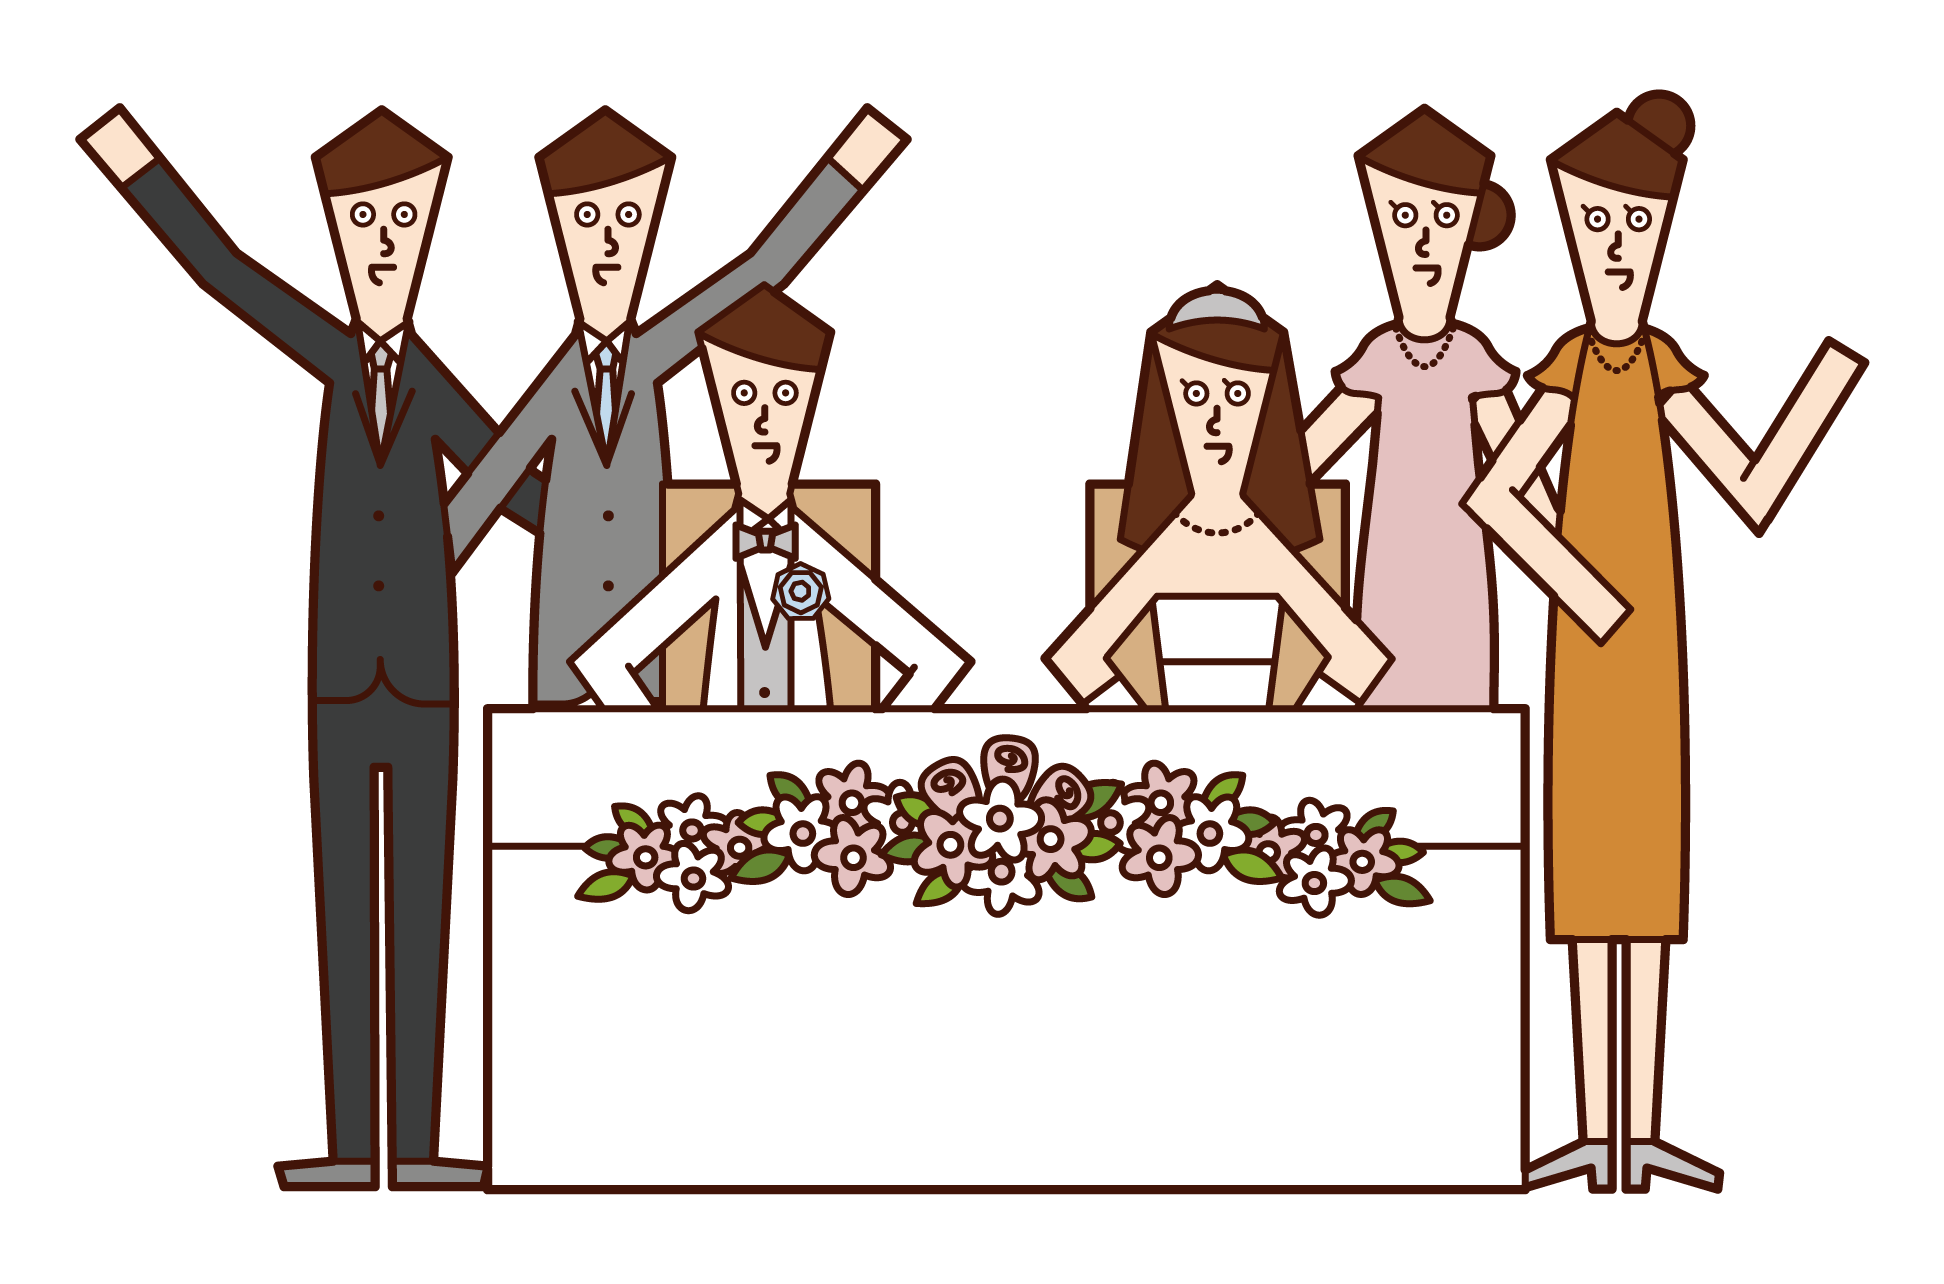 Illustration of friends taking pictures with bride and groom